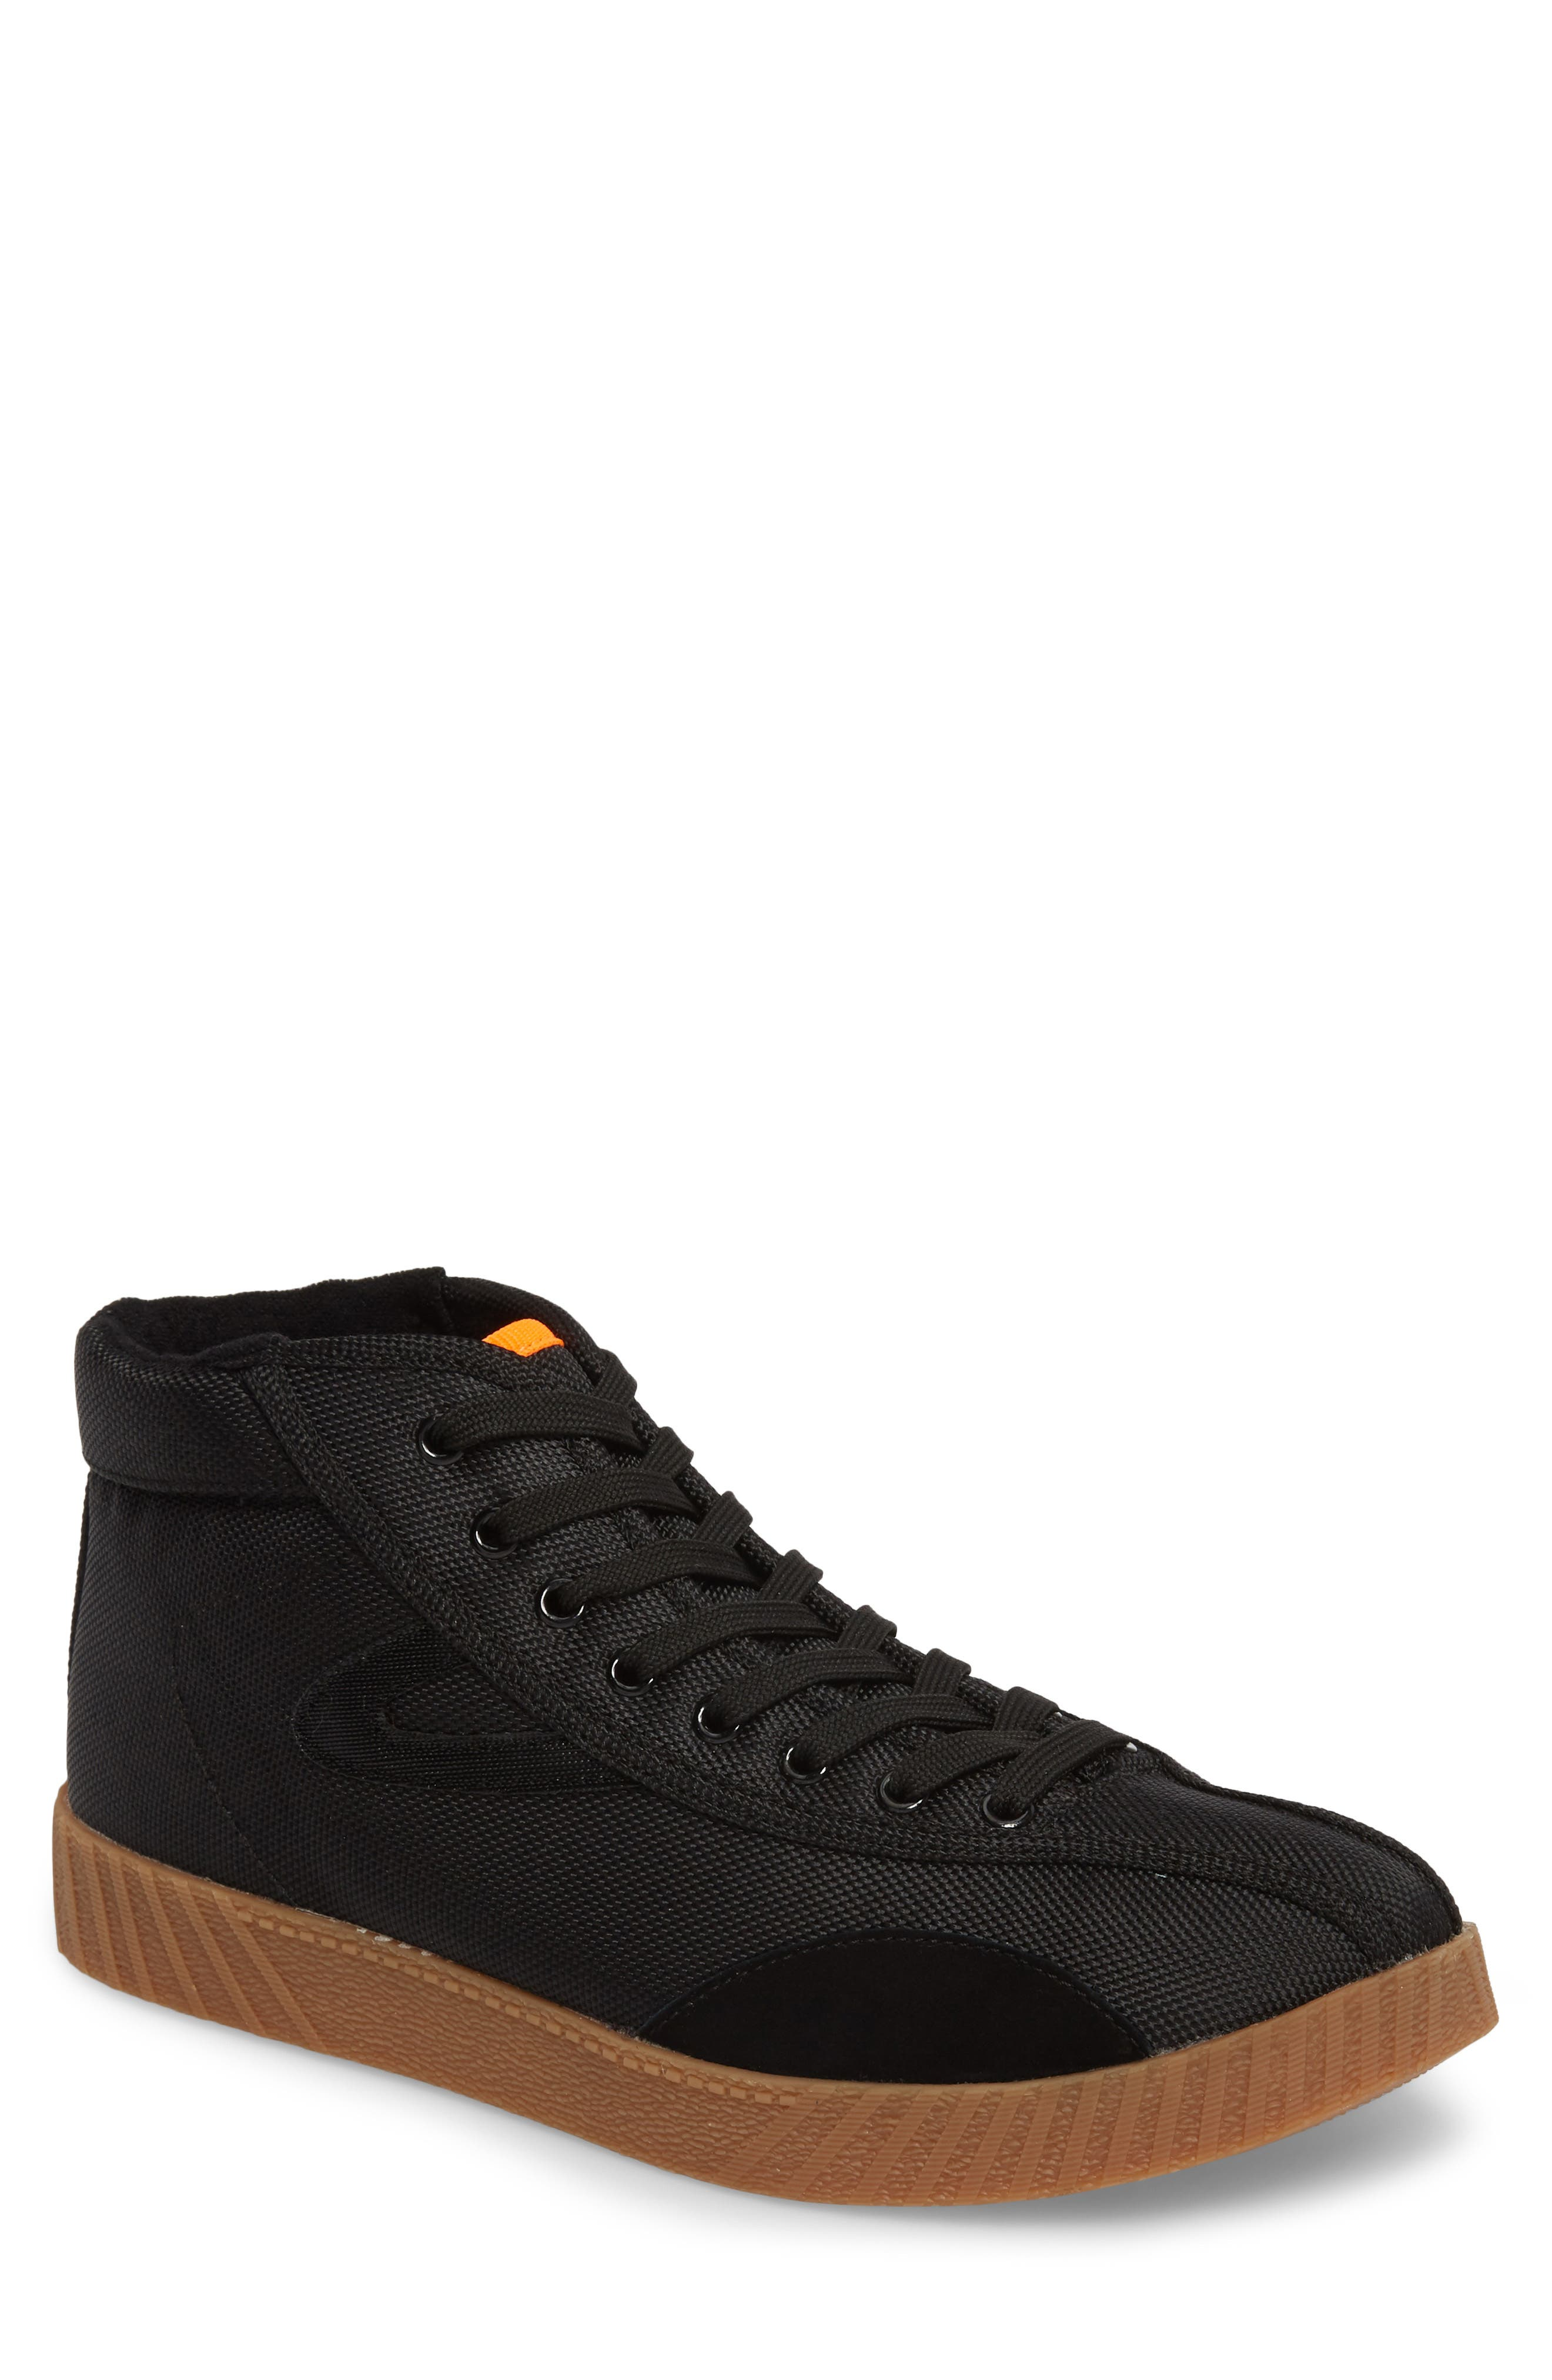 Tretorn Andre 3000 Nylite High Top Sneaker, Black